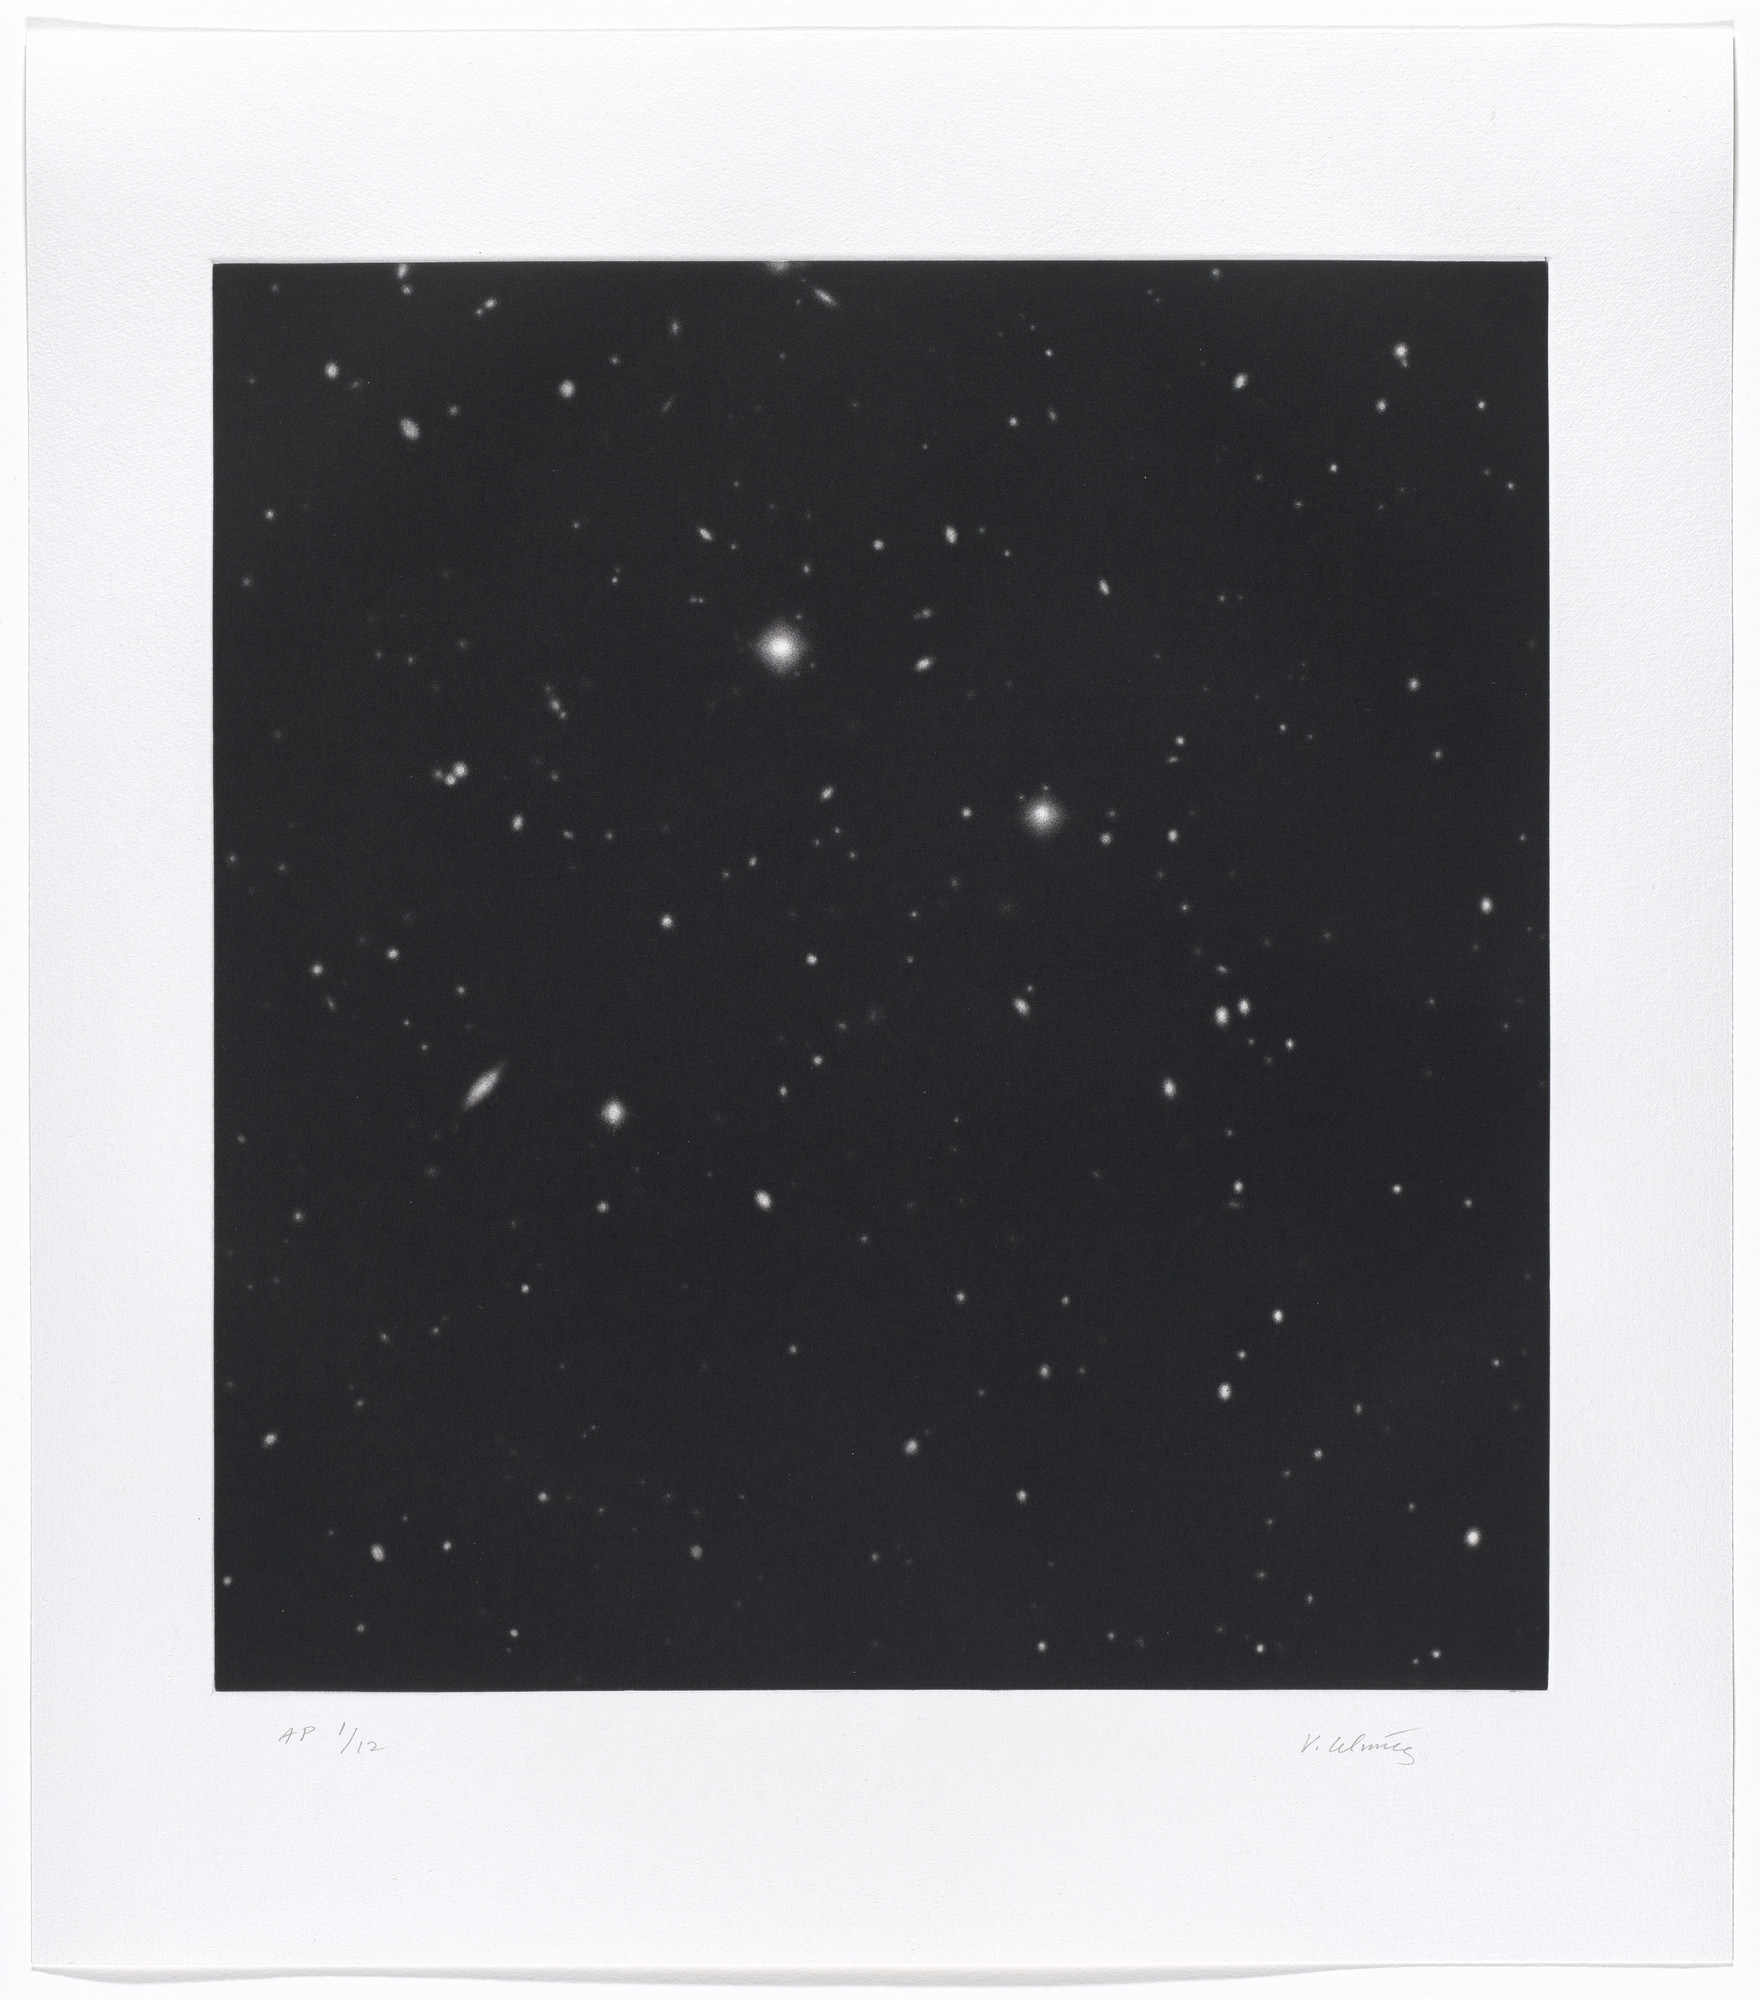 Vija Celmins. Untitled #4. 2016